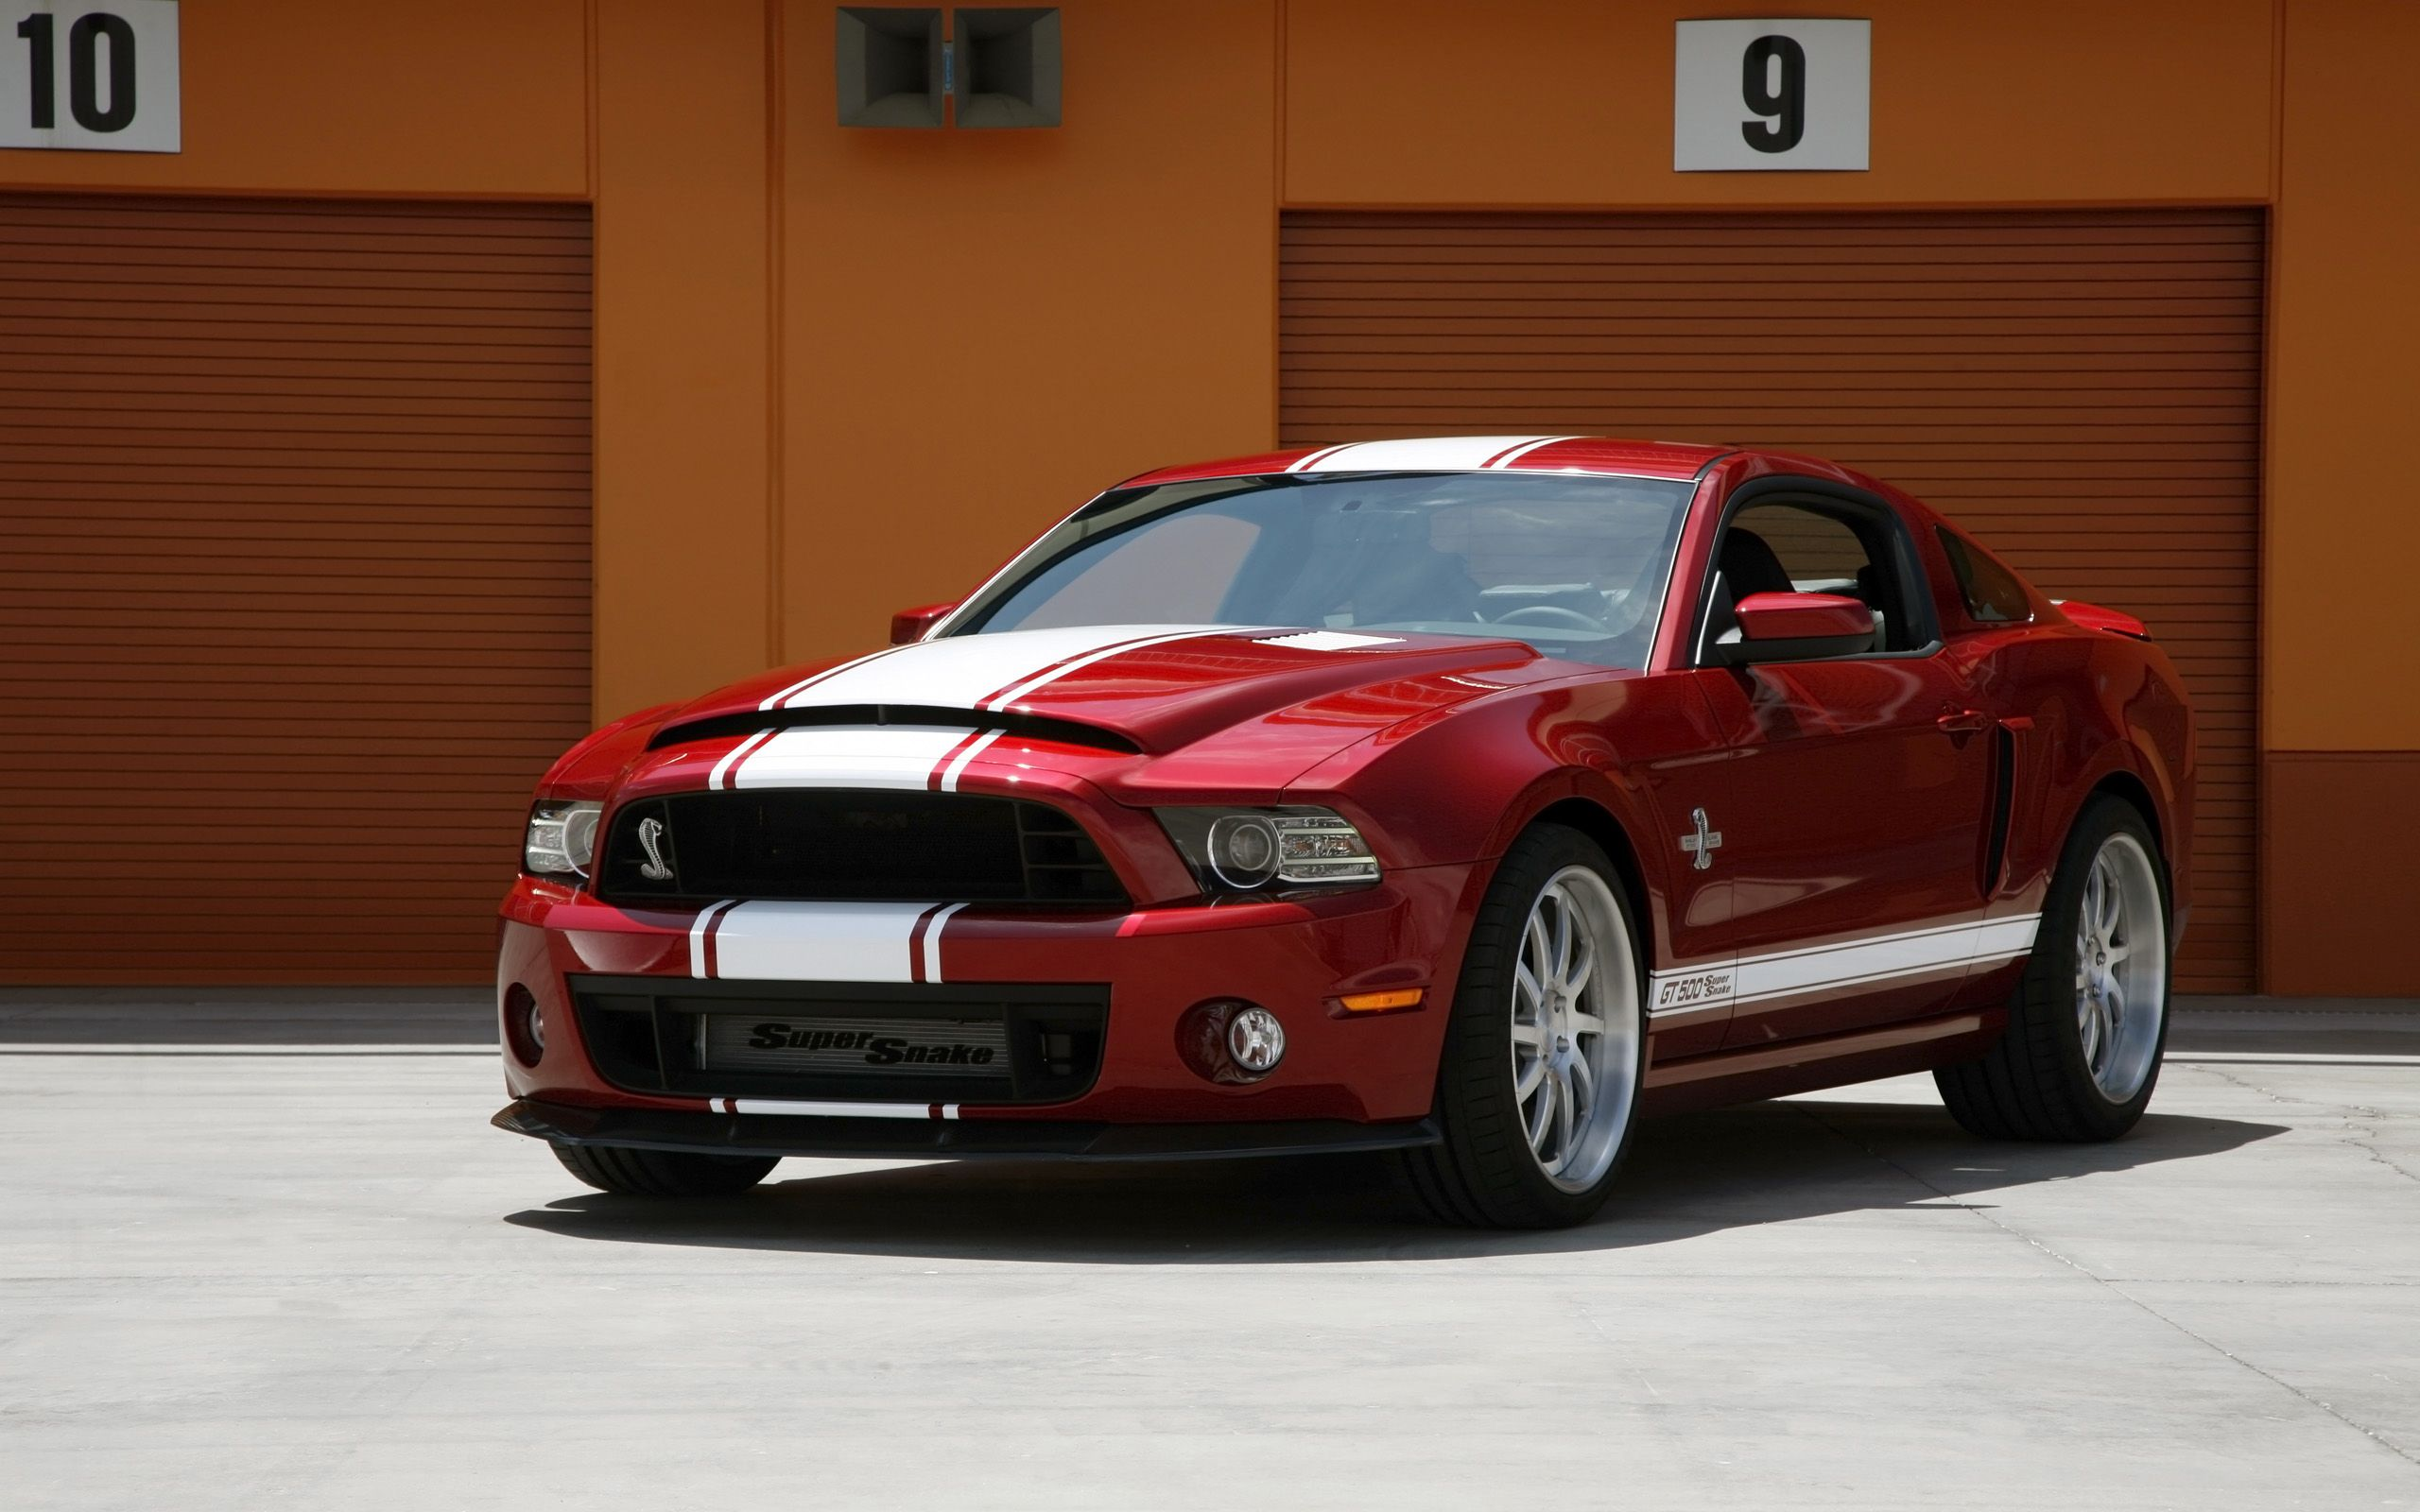 2014 ford mustang shelby gt500 super snake hd car wallpaper stuff to buy pinterest super. Black Bedroom Furniture Sets. Home Design Ideas